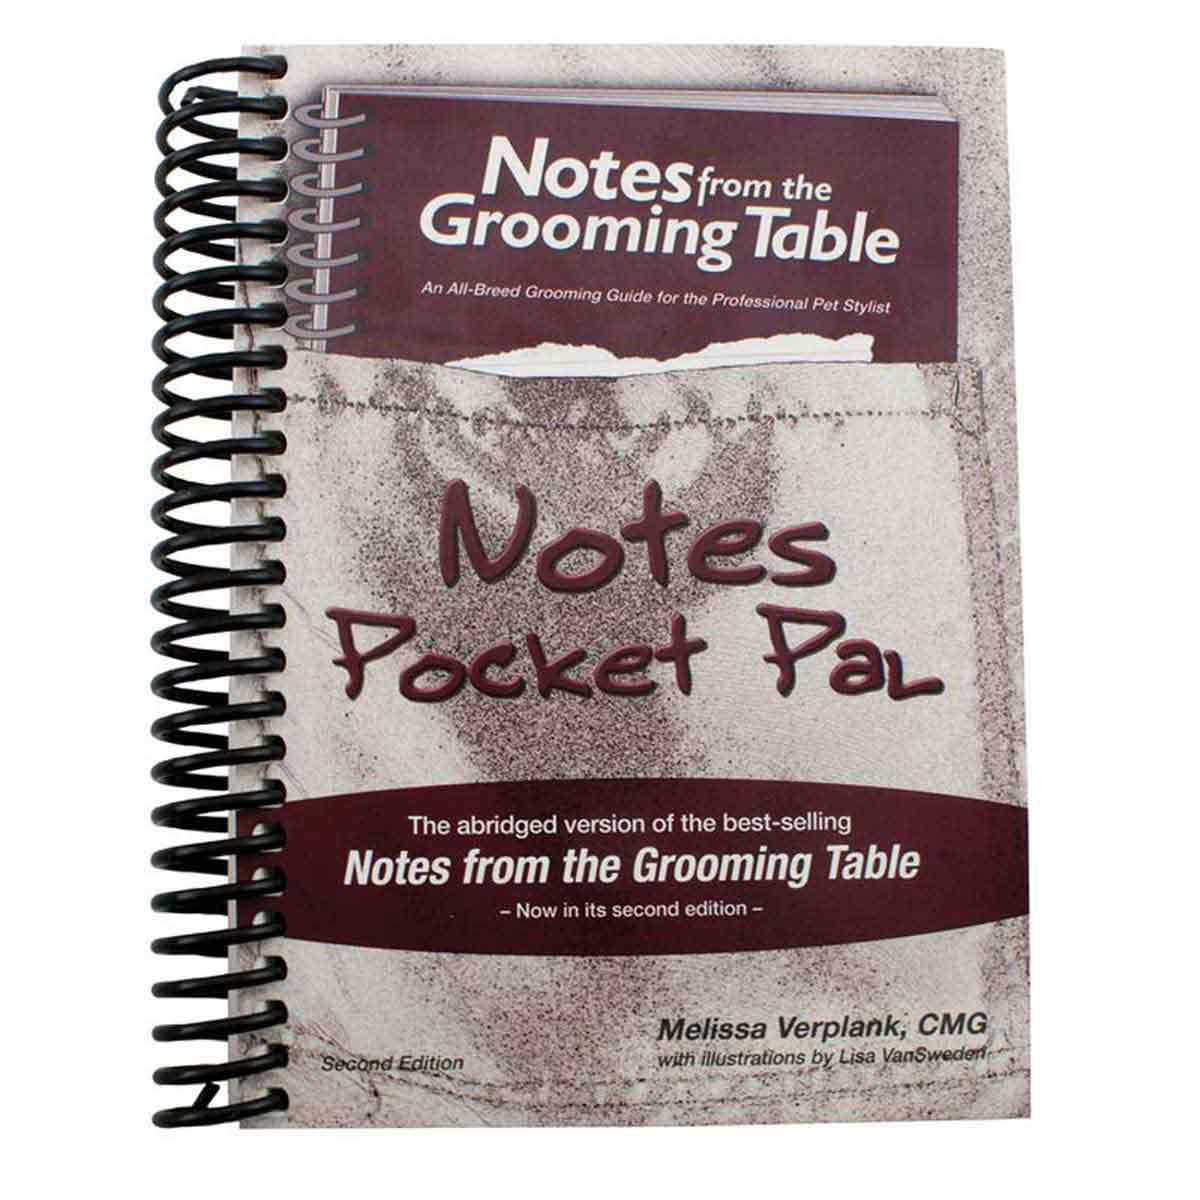 Notes From The Grooming Table: An All-Breed Grooming Guide for the Professional Pet Stylist - Notes Pocket Pal